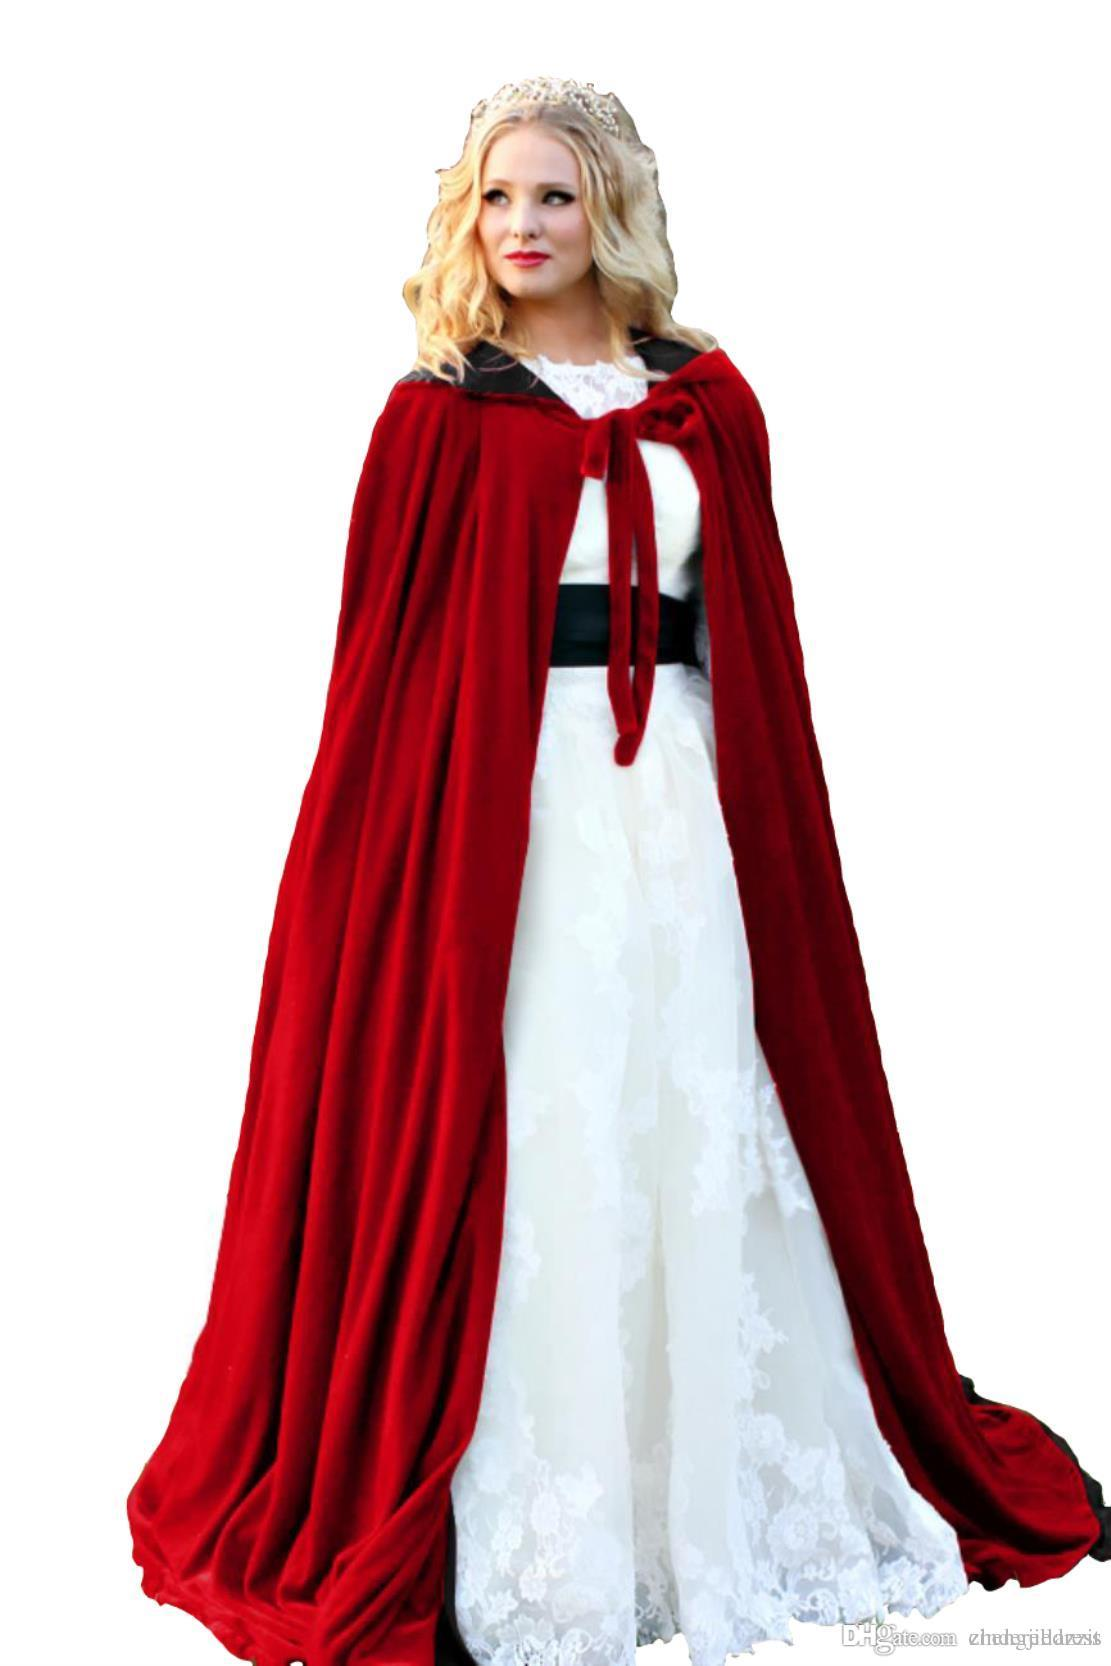 45913b6e7a 2019 Lining Black Hooded Velvet Cloak Gothic Wicca Robe Medieval Witchcraft  Larp Cape Hooded Vampire Cape Halloween Party Cloak Size S 6XXL From ...